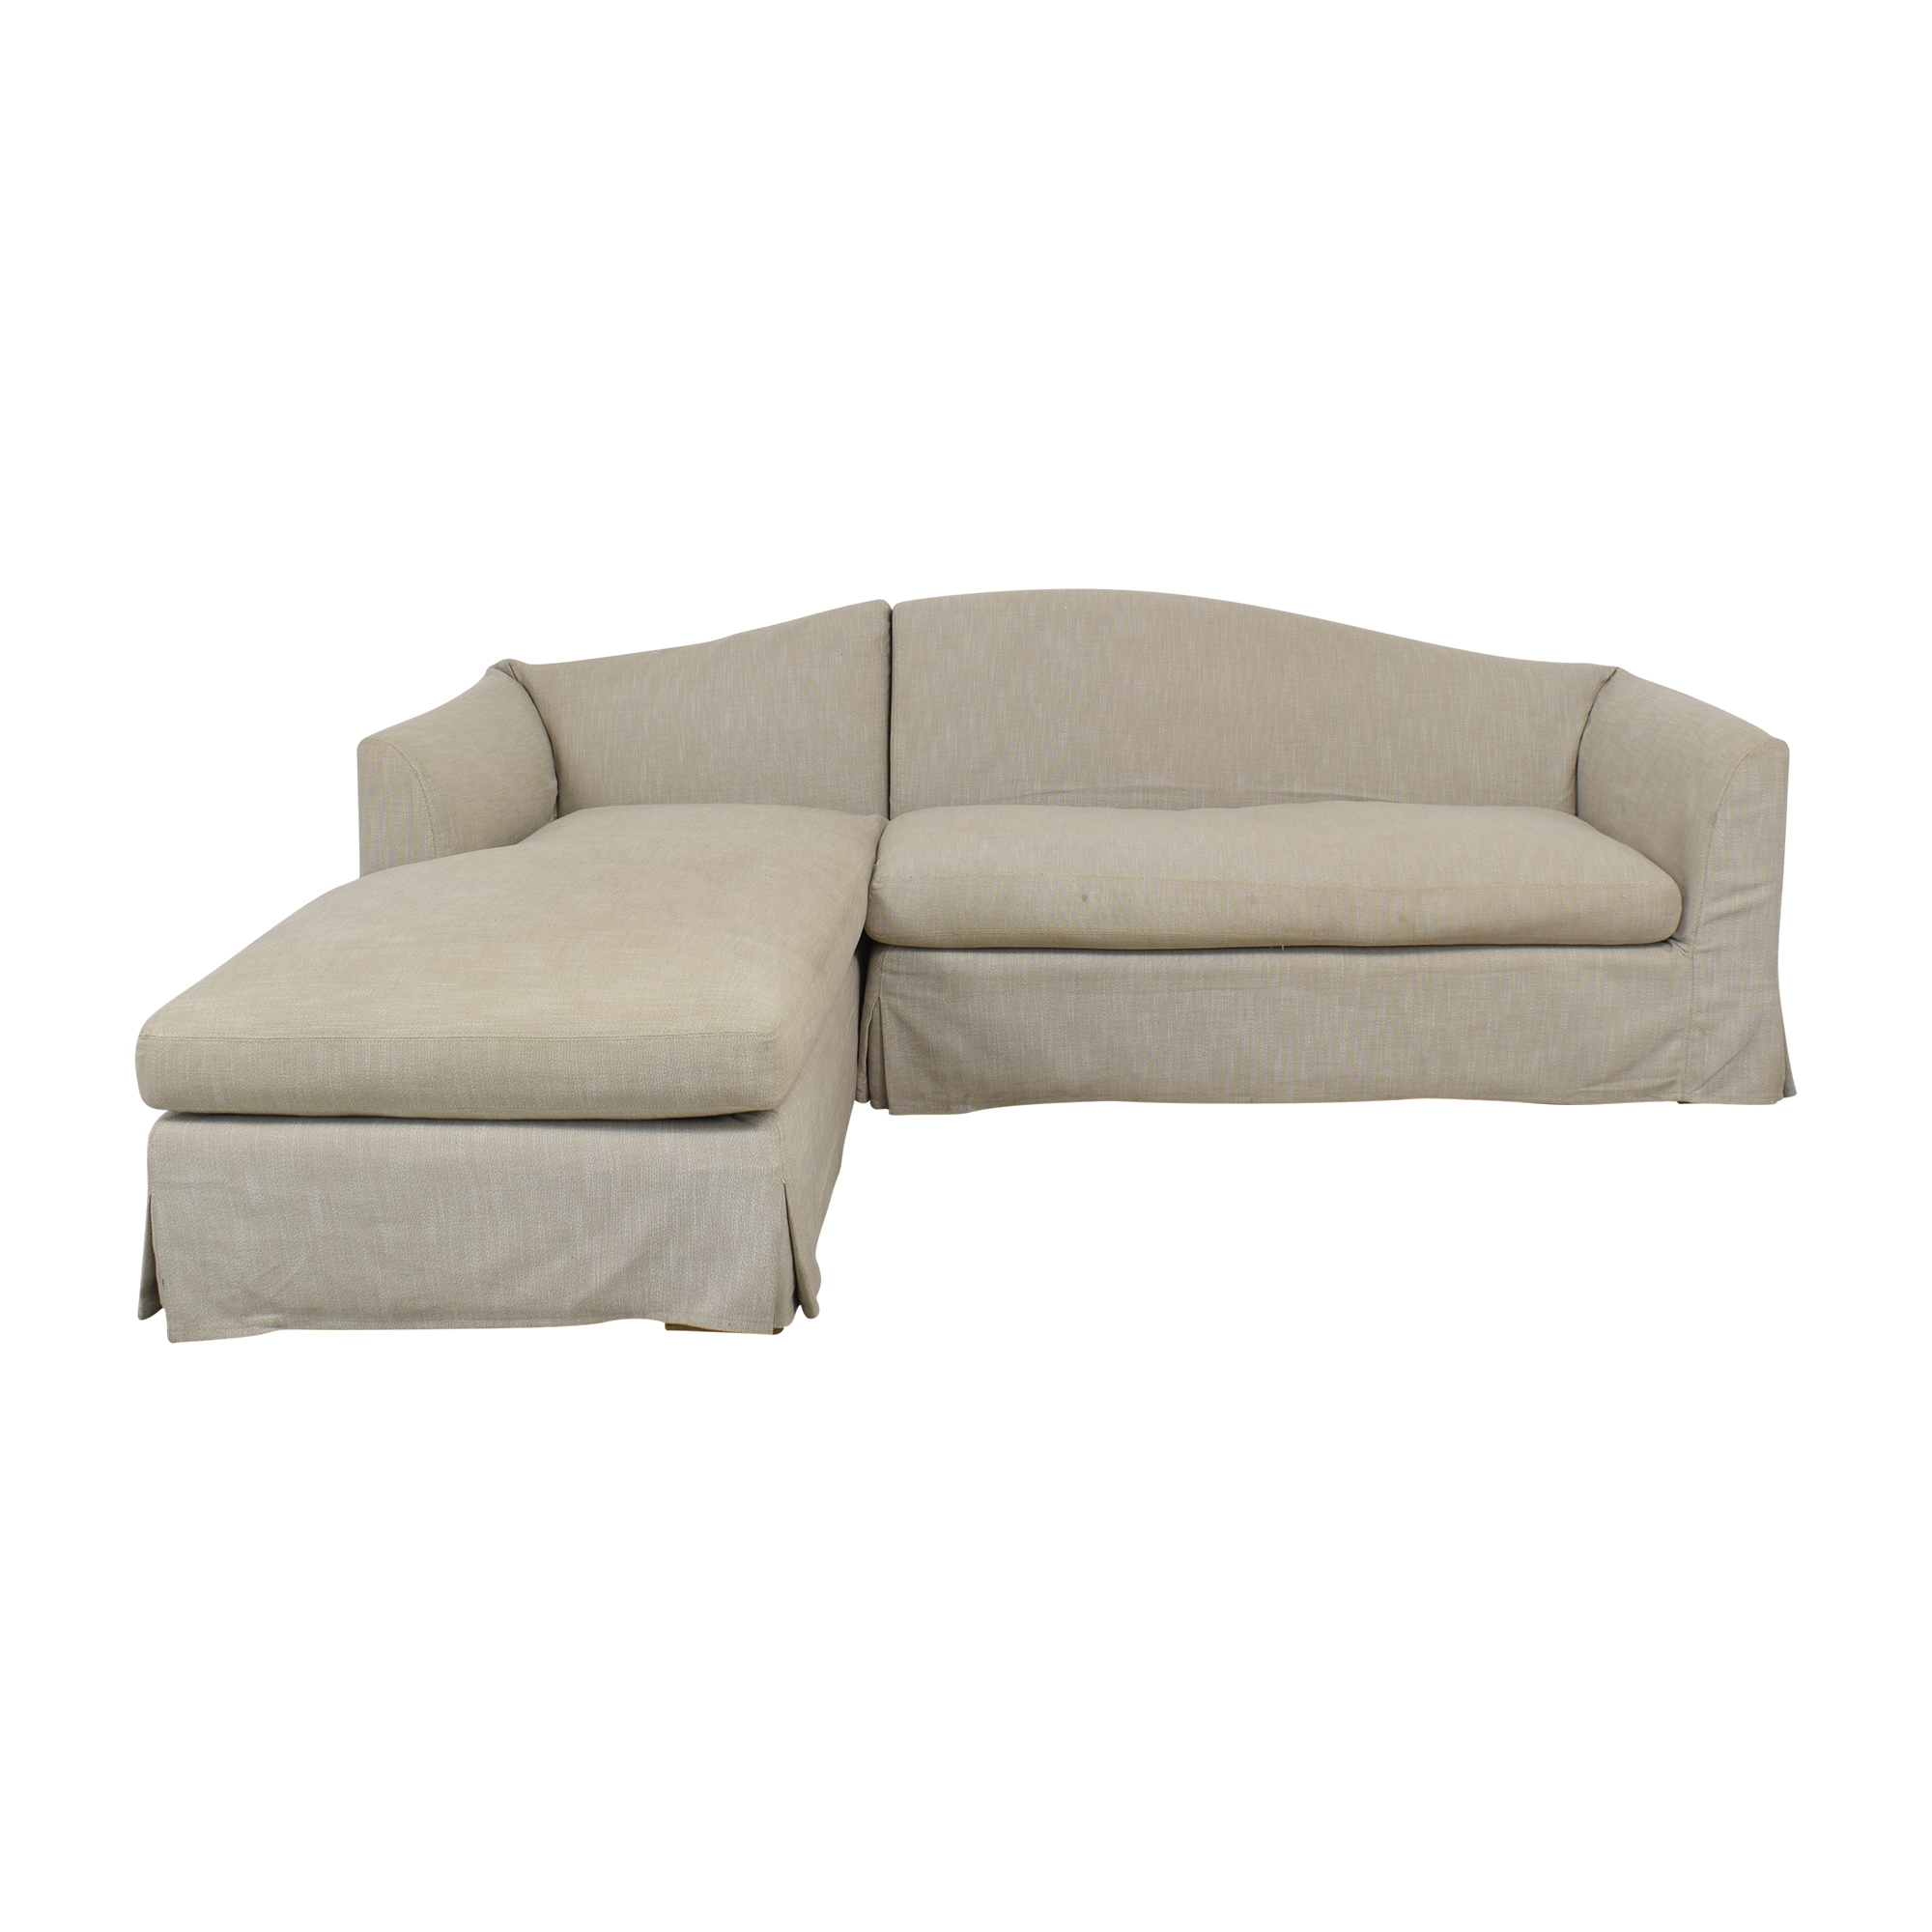 Restoration Hardware Restoration Hardware Belgian Camelback Slipcovered Sectional Sofa with Chaise pa